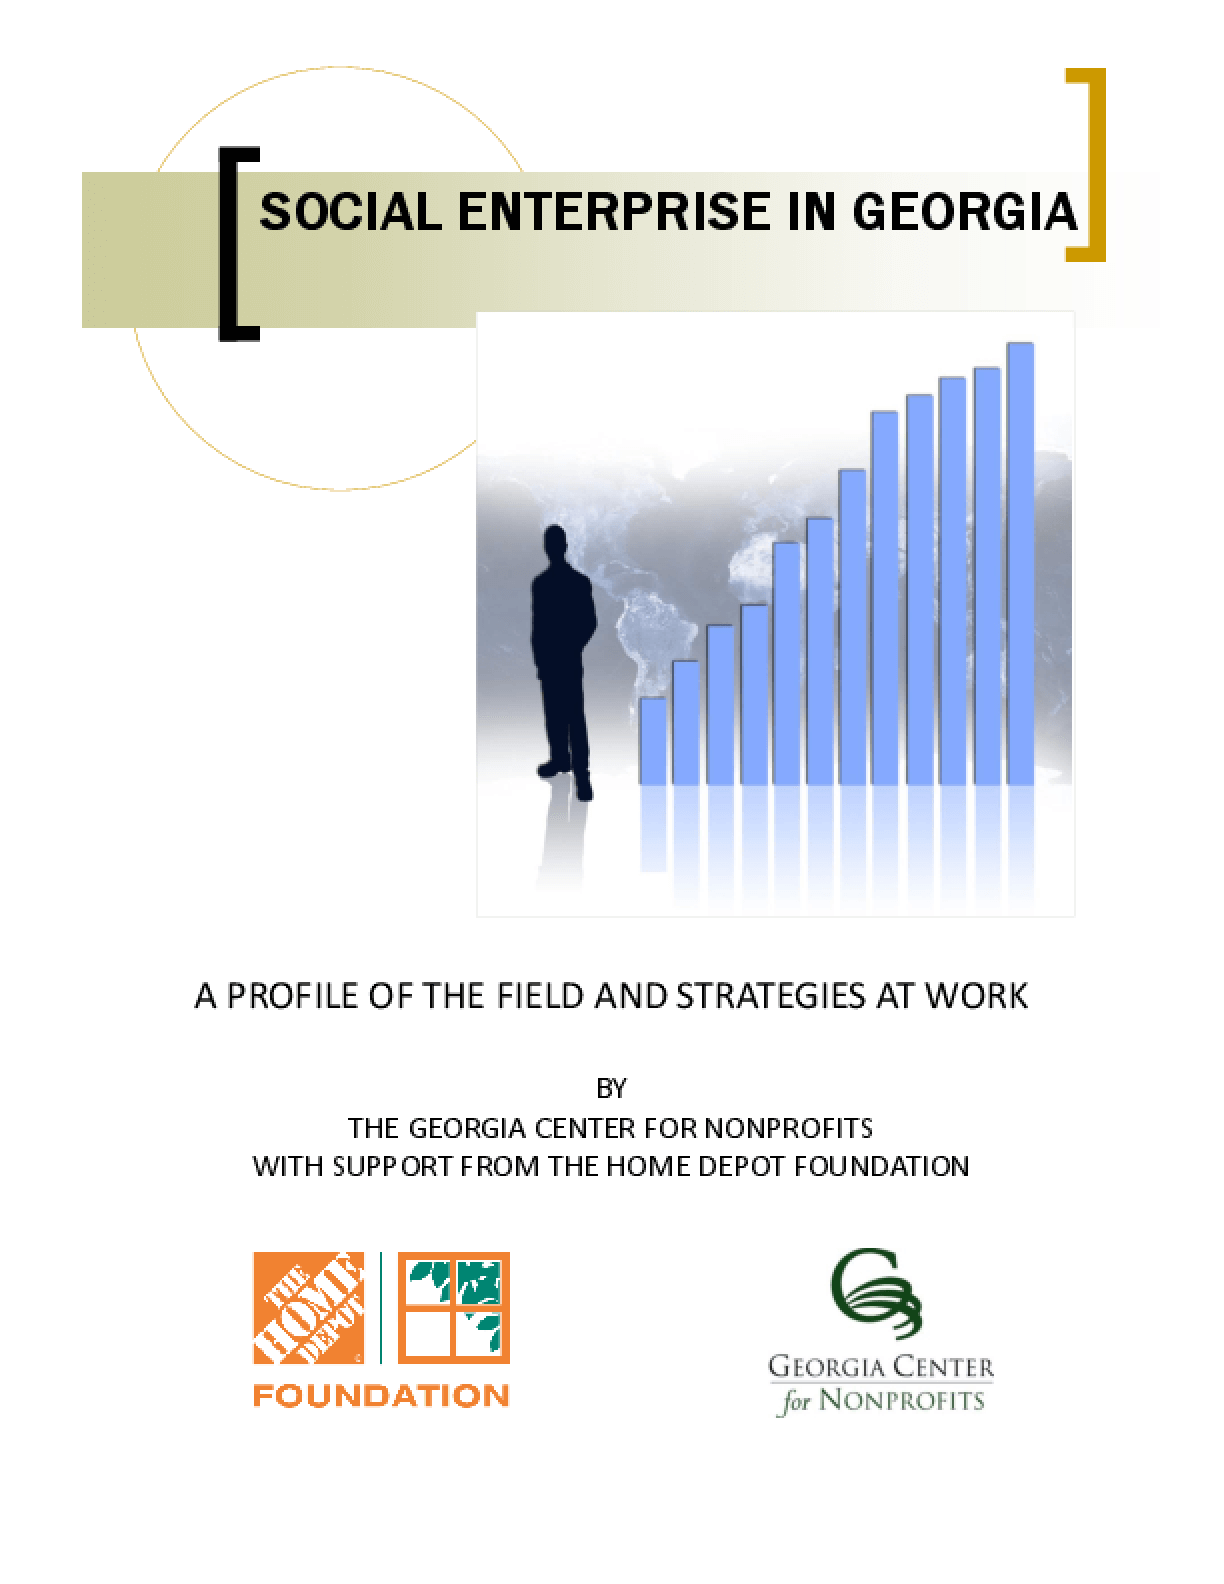 Social Enterprise in Georgia: A Profile of the Field and Strategies At Work